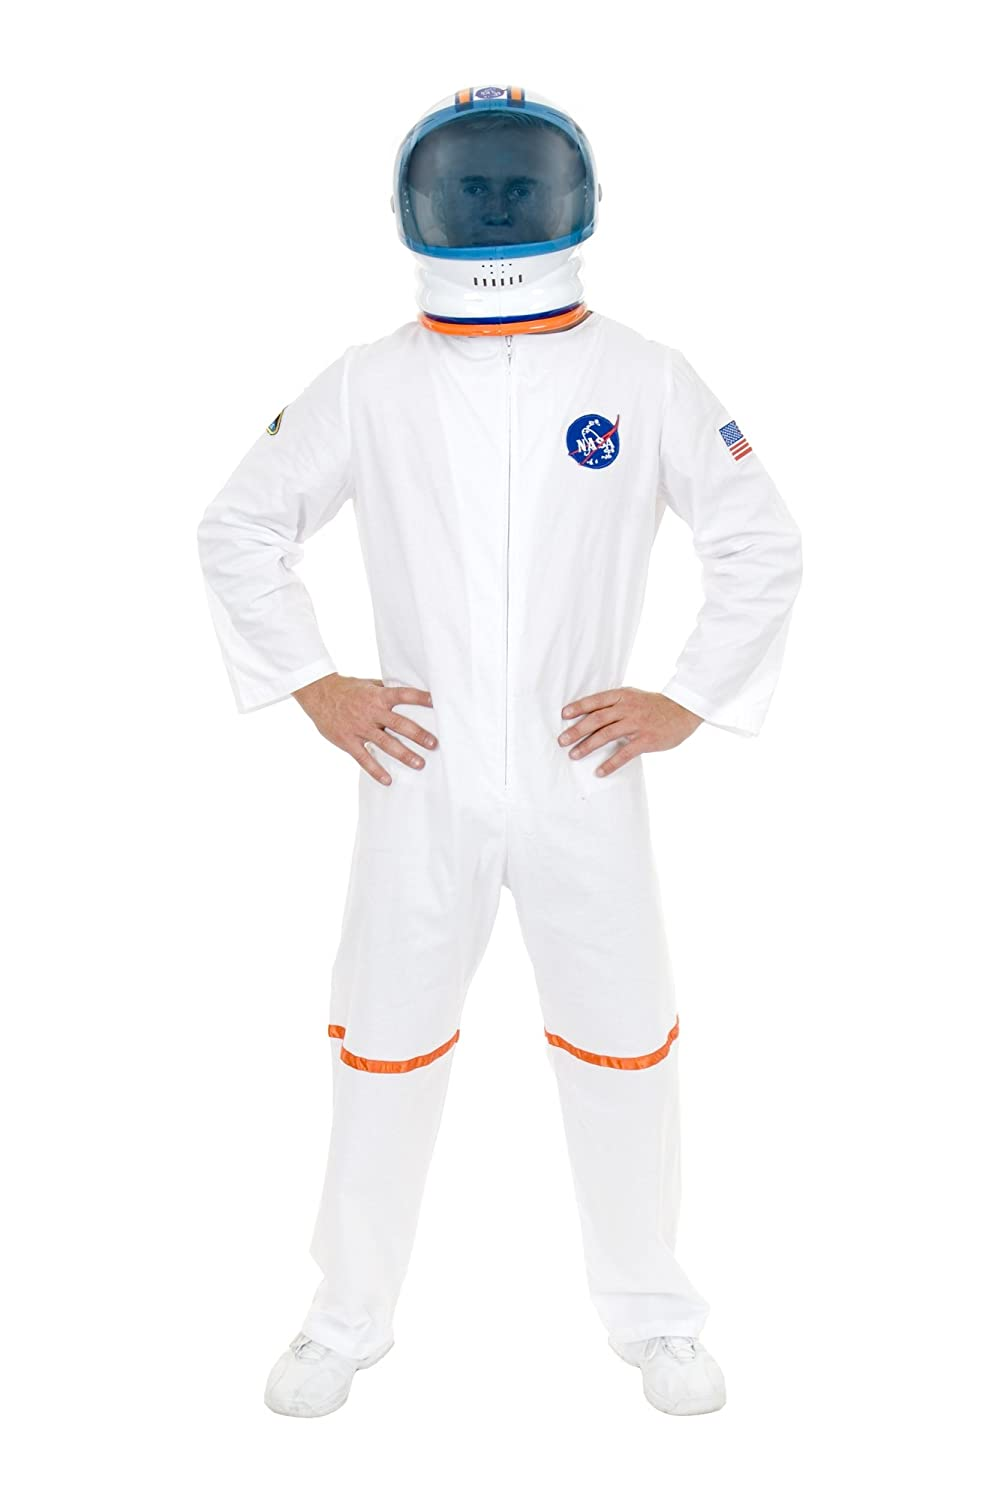 b39828f0cc79 Amazon.com  Charades Men s Astronaut Suit  Clothing